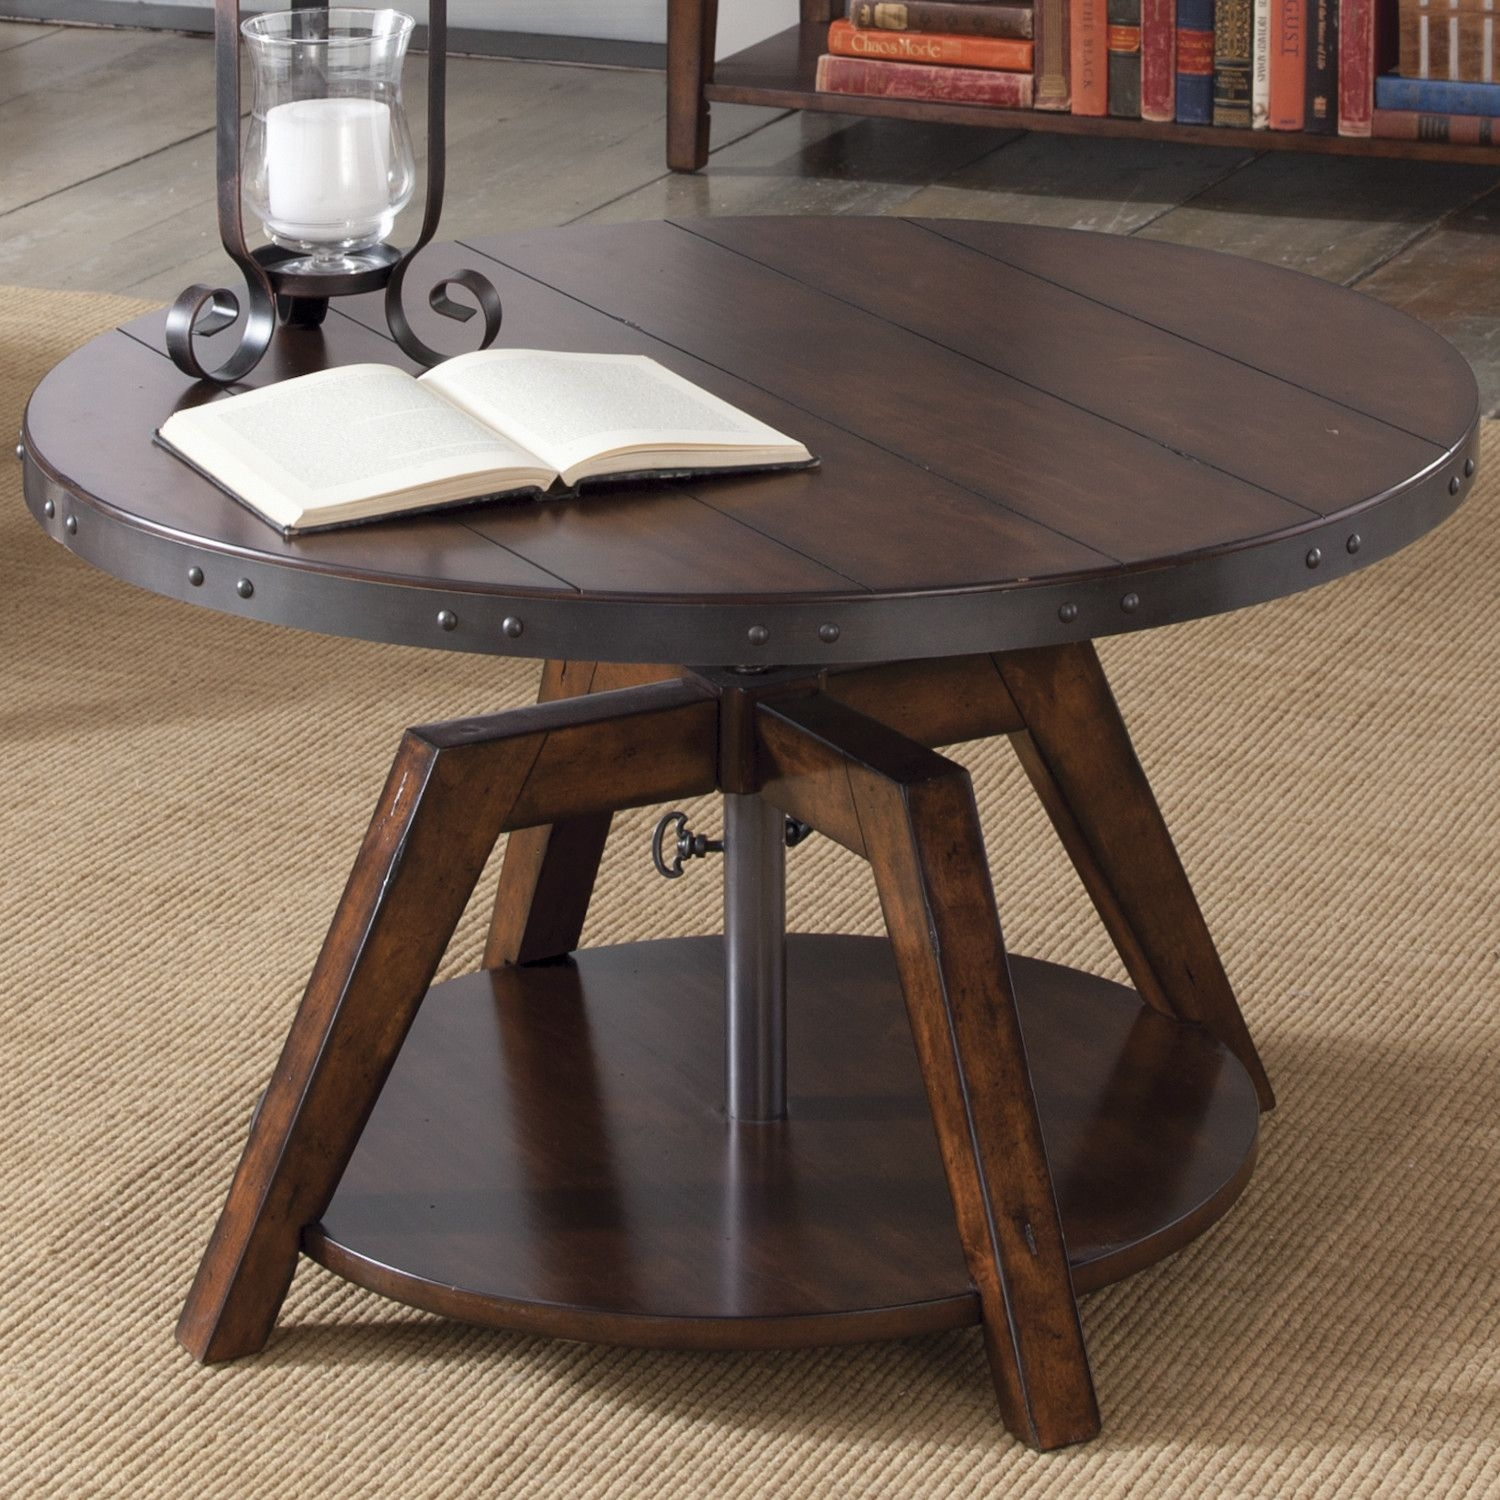 50 Amazing Convertible Coffee Table To Dining Table Visual Hunt